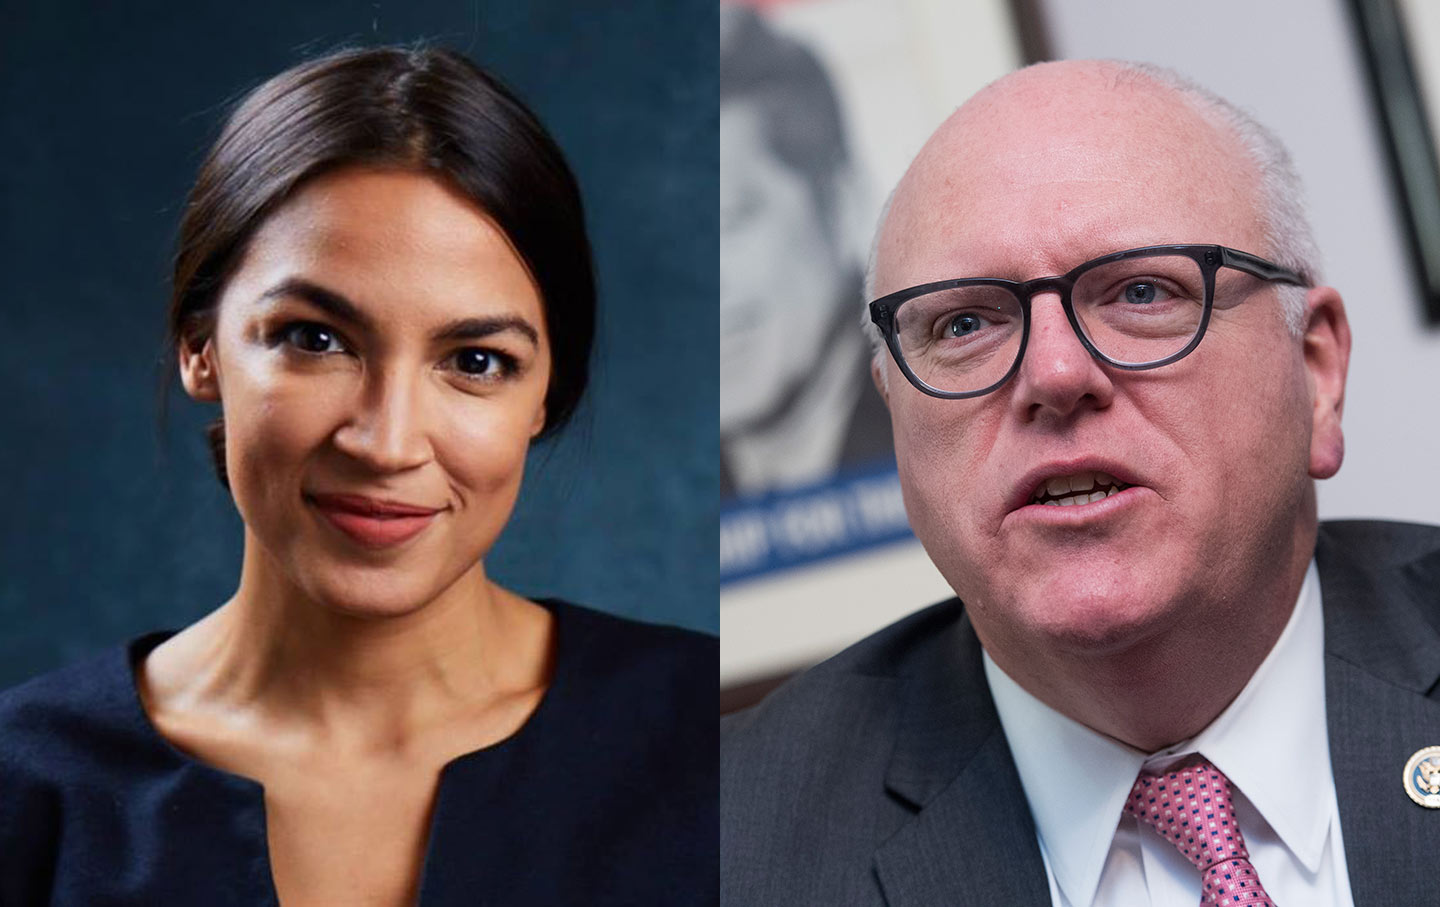 Image result for Free images of Alexandria Ocasio-Cortez vs. Joe Crowley